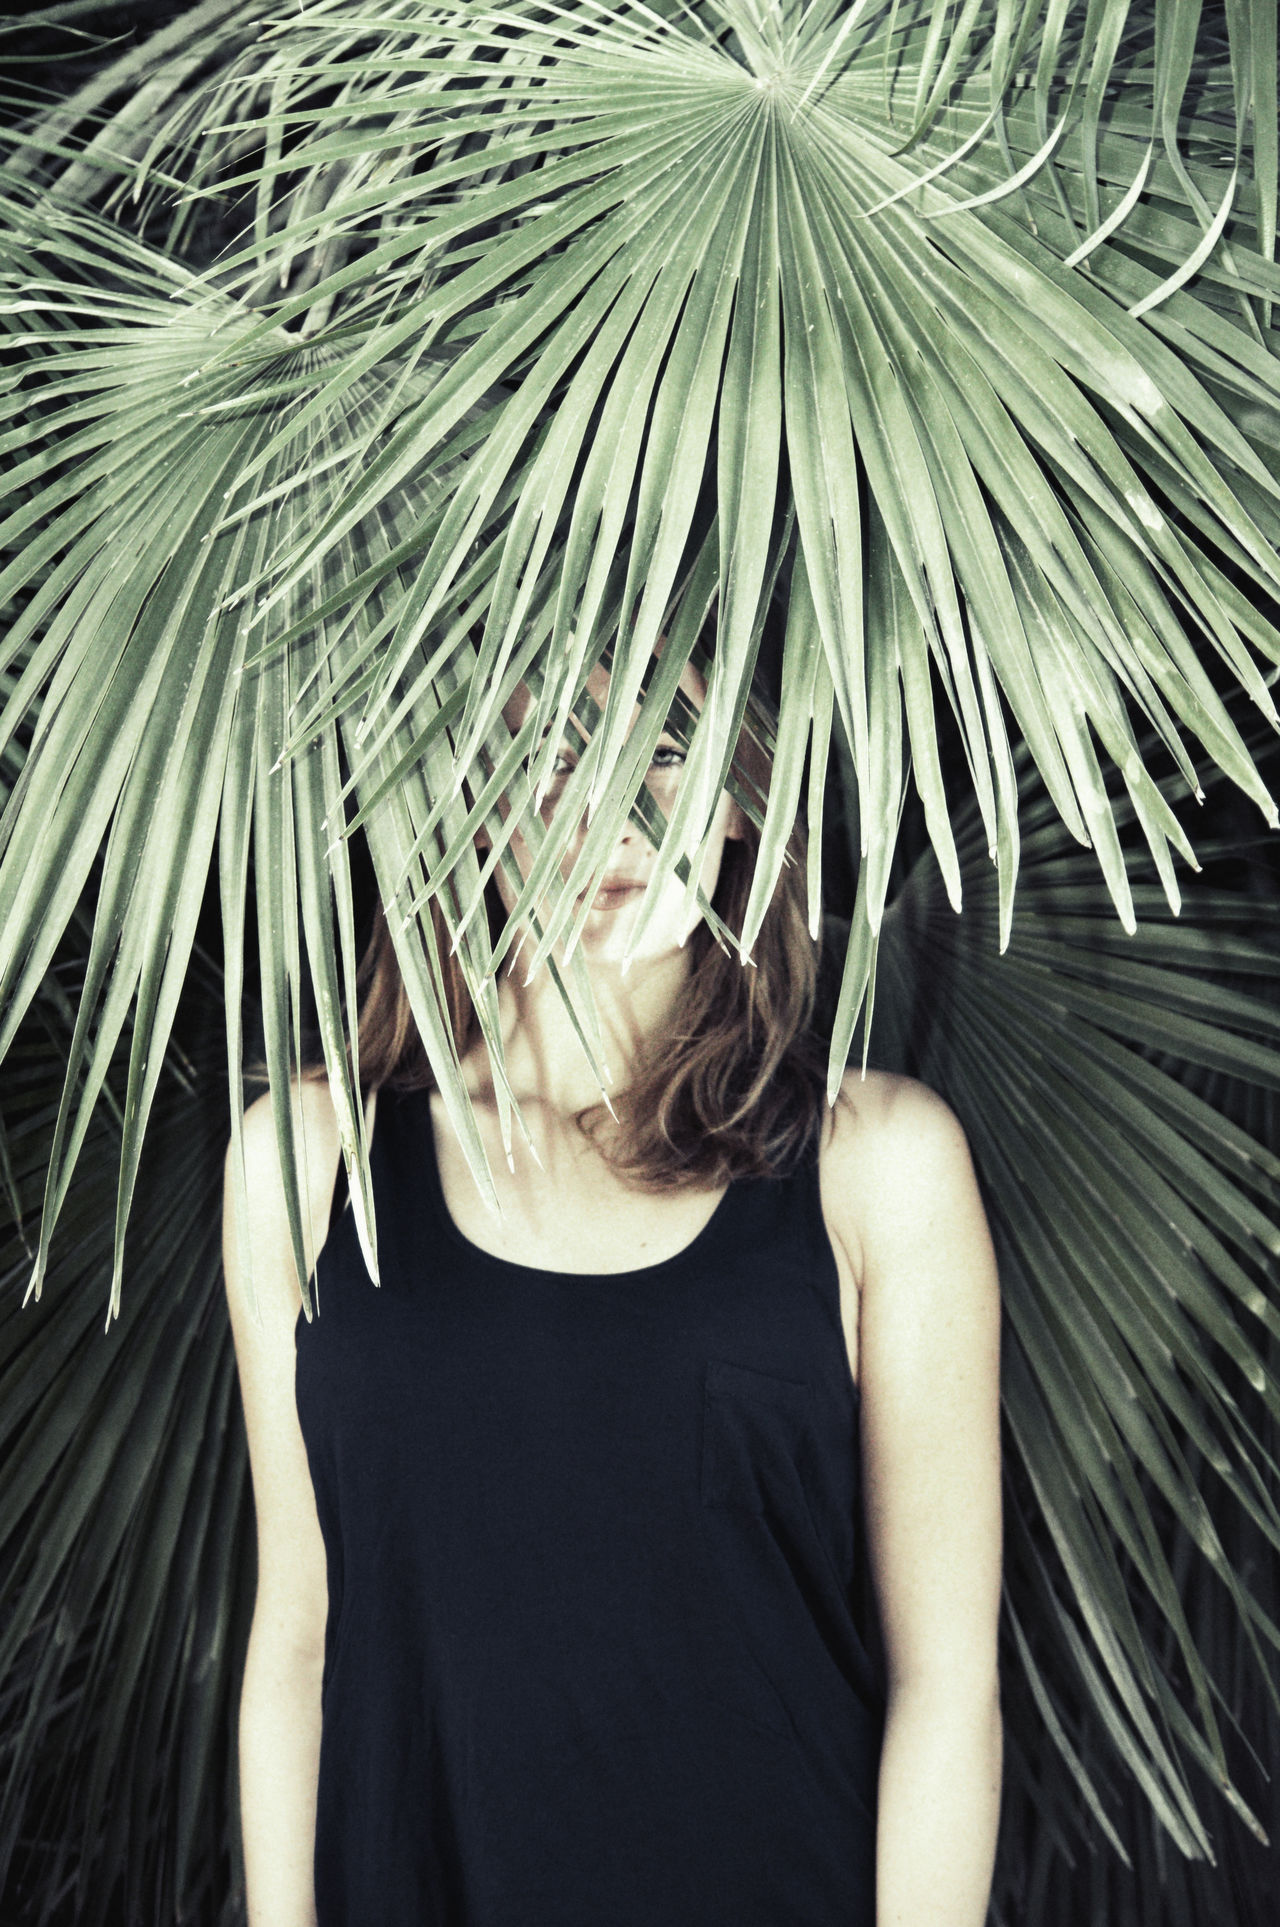 Facepalm Beauty Face Girl Green Hardly Visible Hideout Linas Was Here Lurking Model Palm Roar Summer Tiger